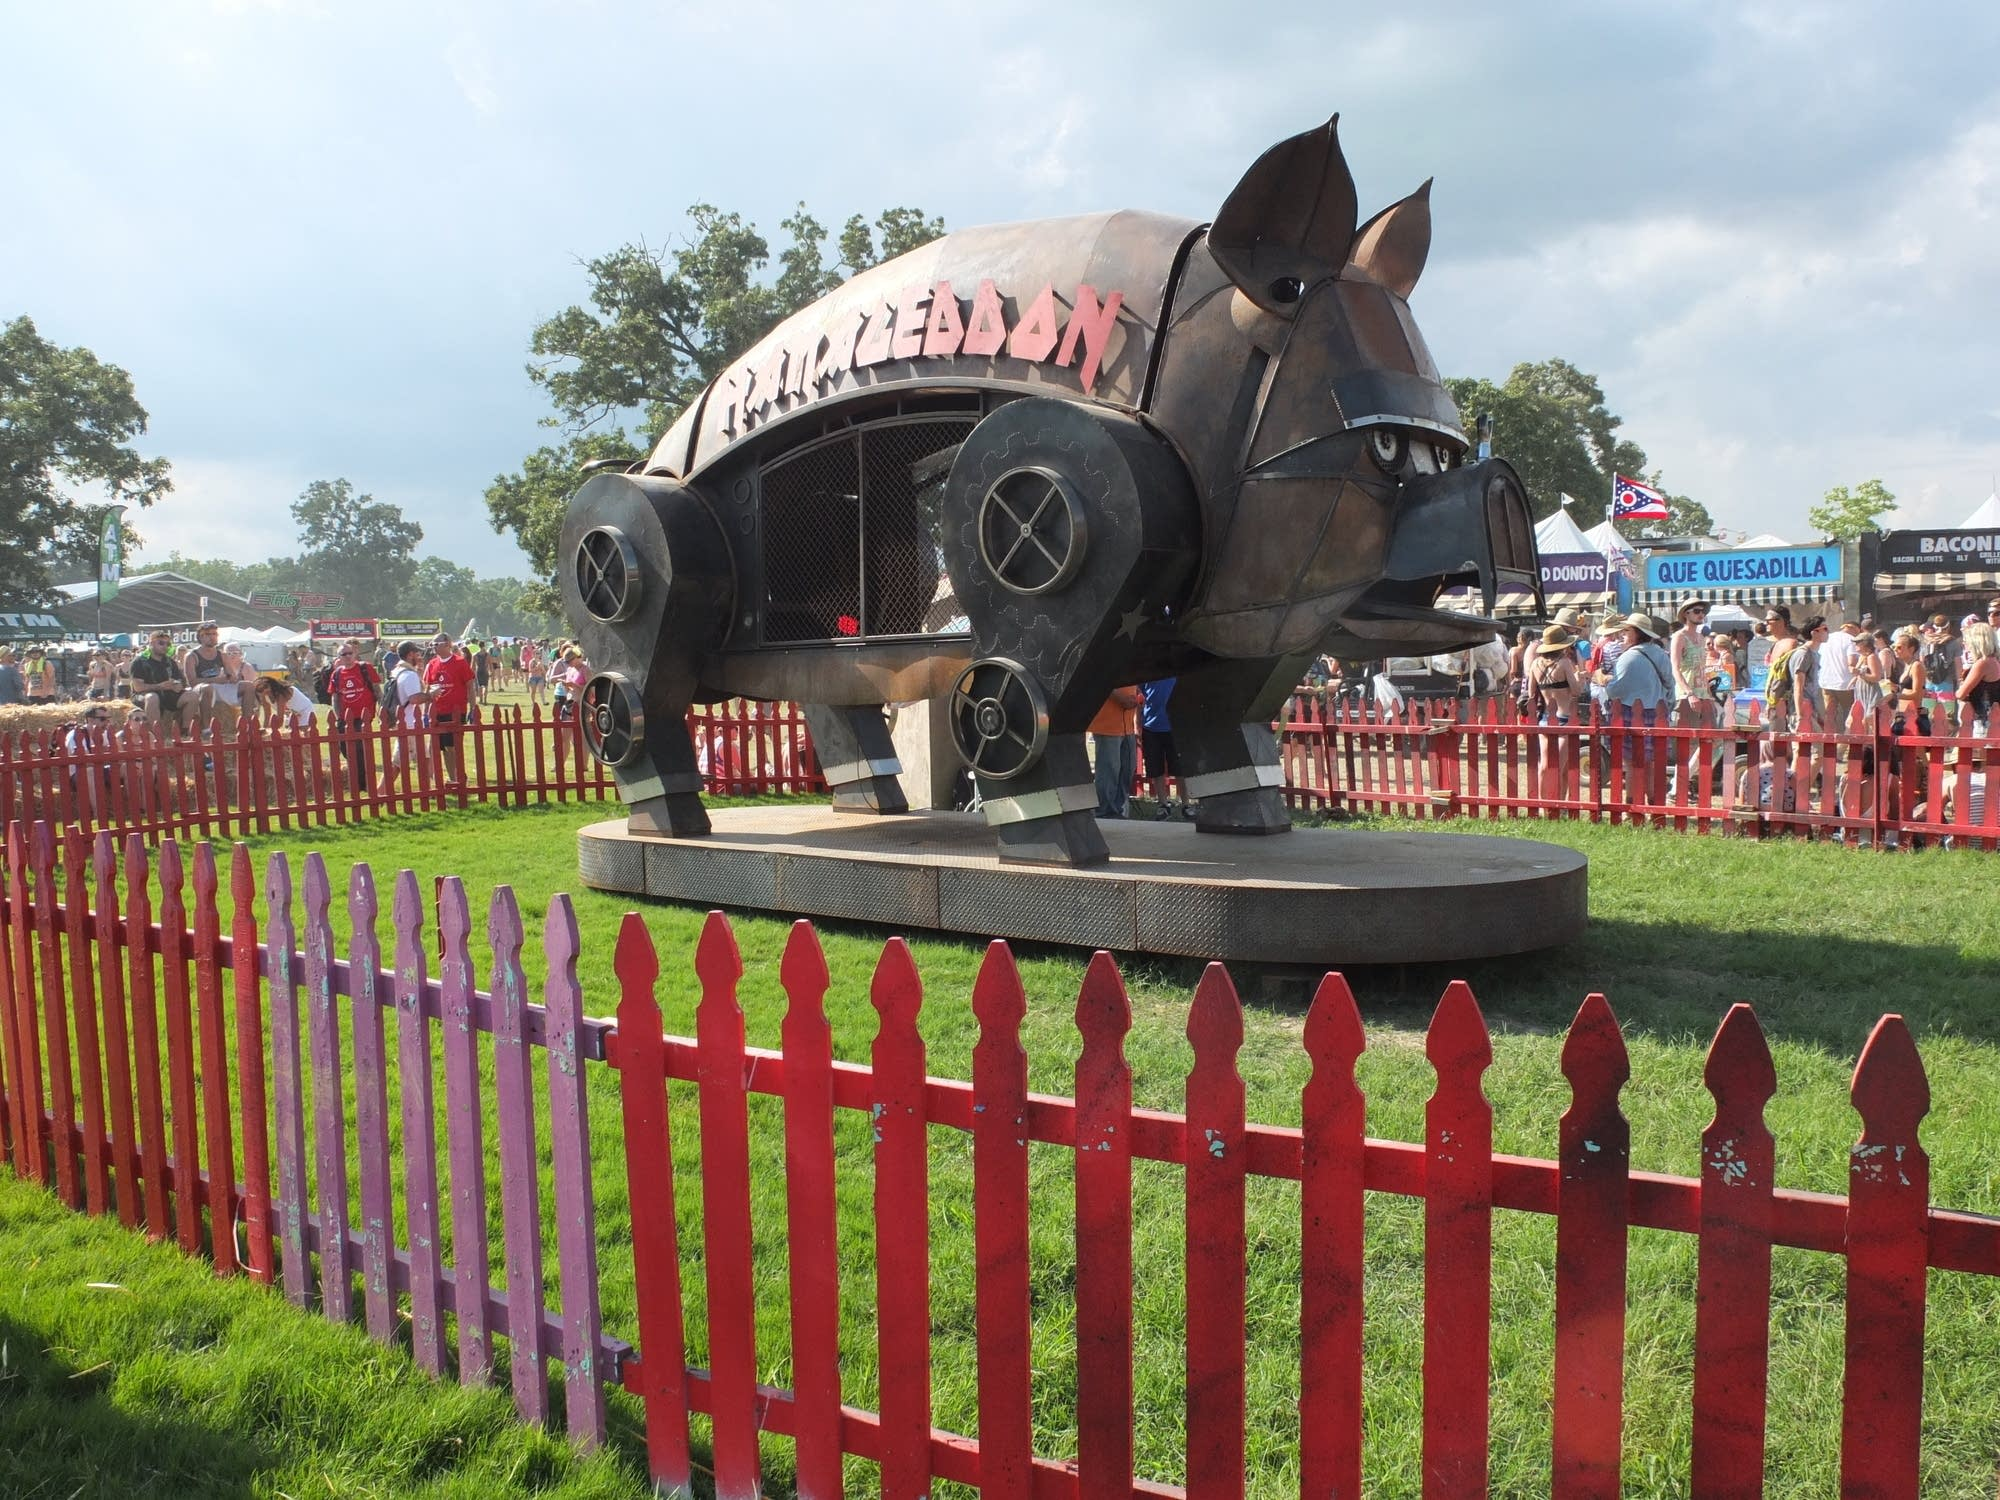 Metal pig sculpture at Bonnaroo